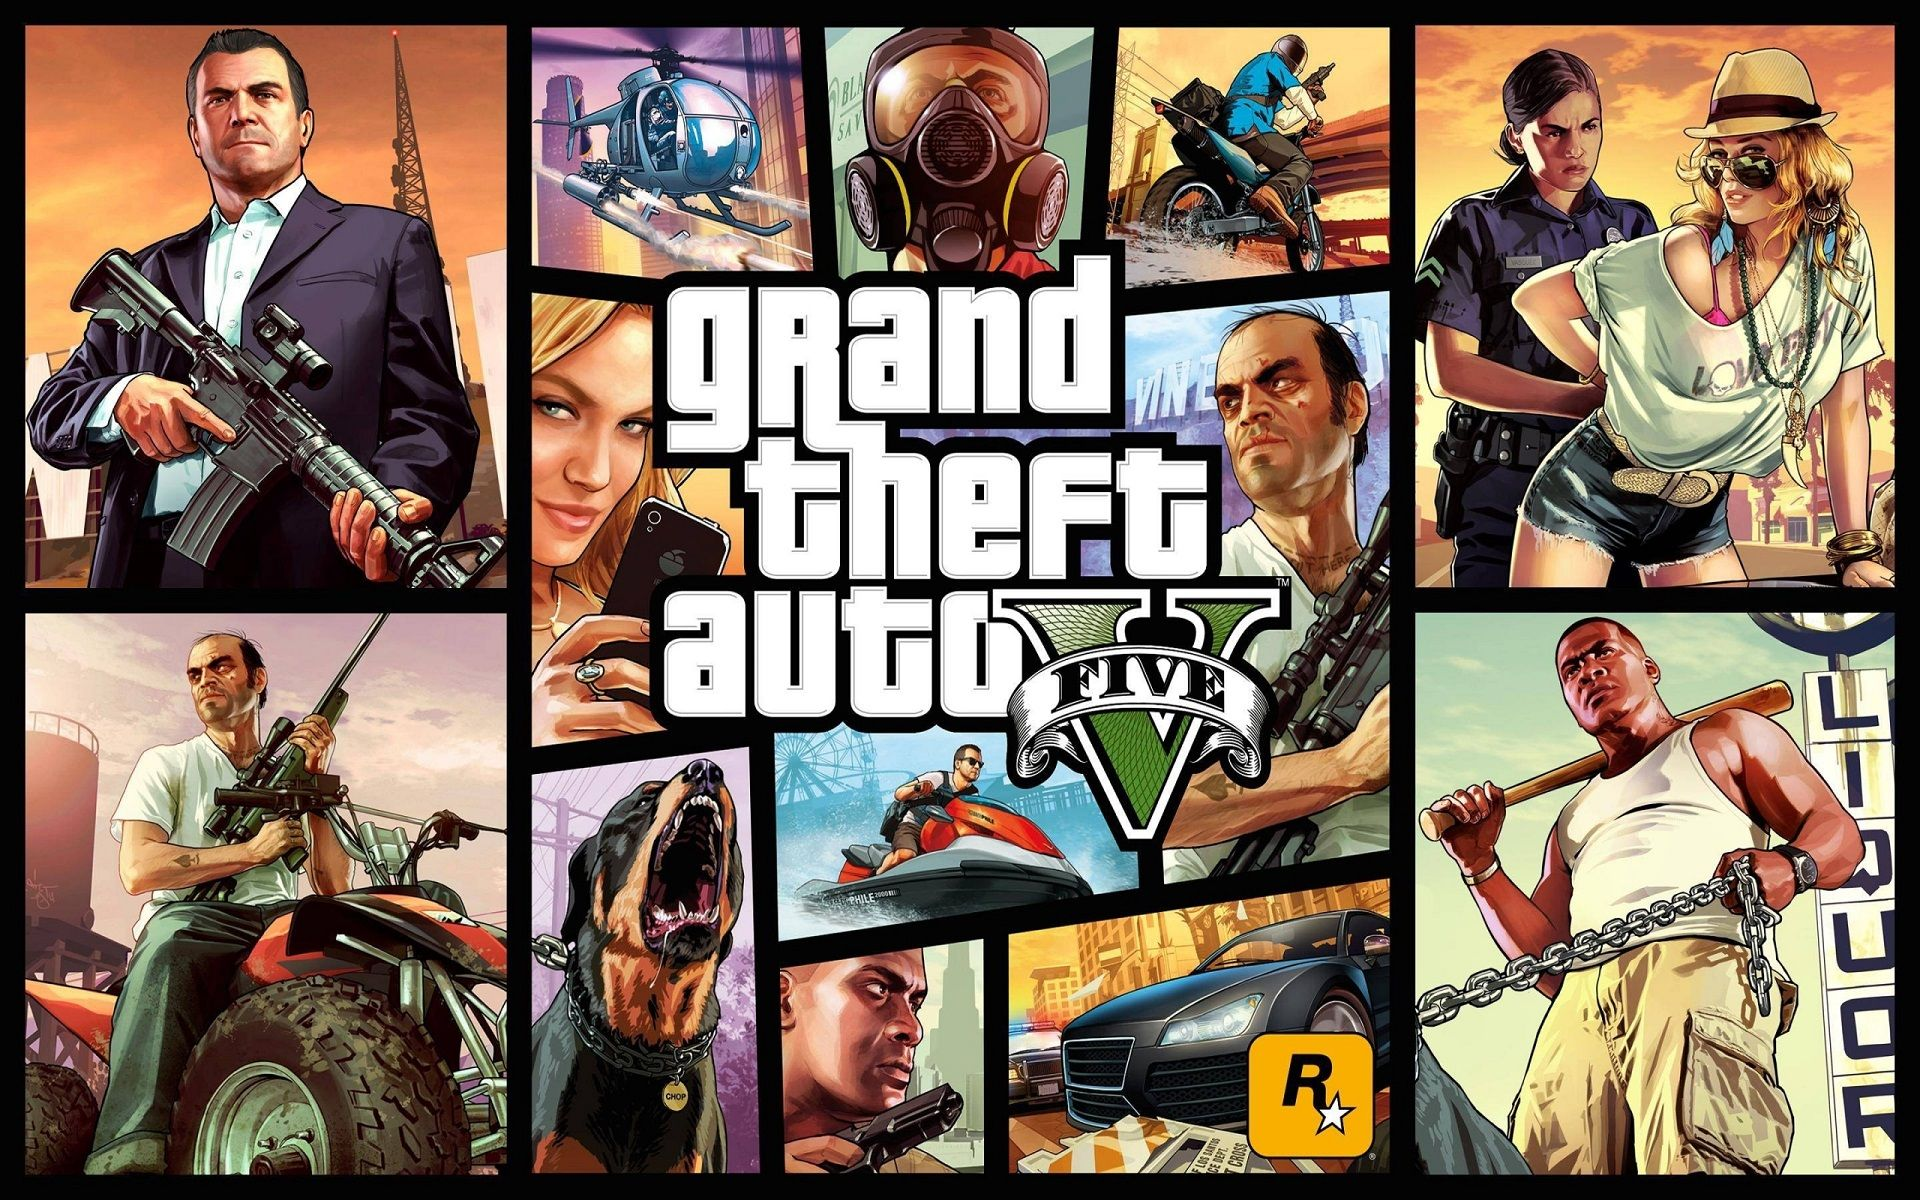 Grand Theft Auto 5 is the most profitable entertainment product ever